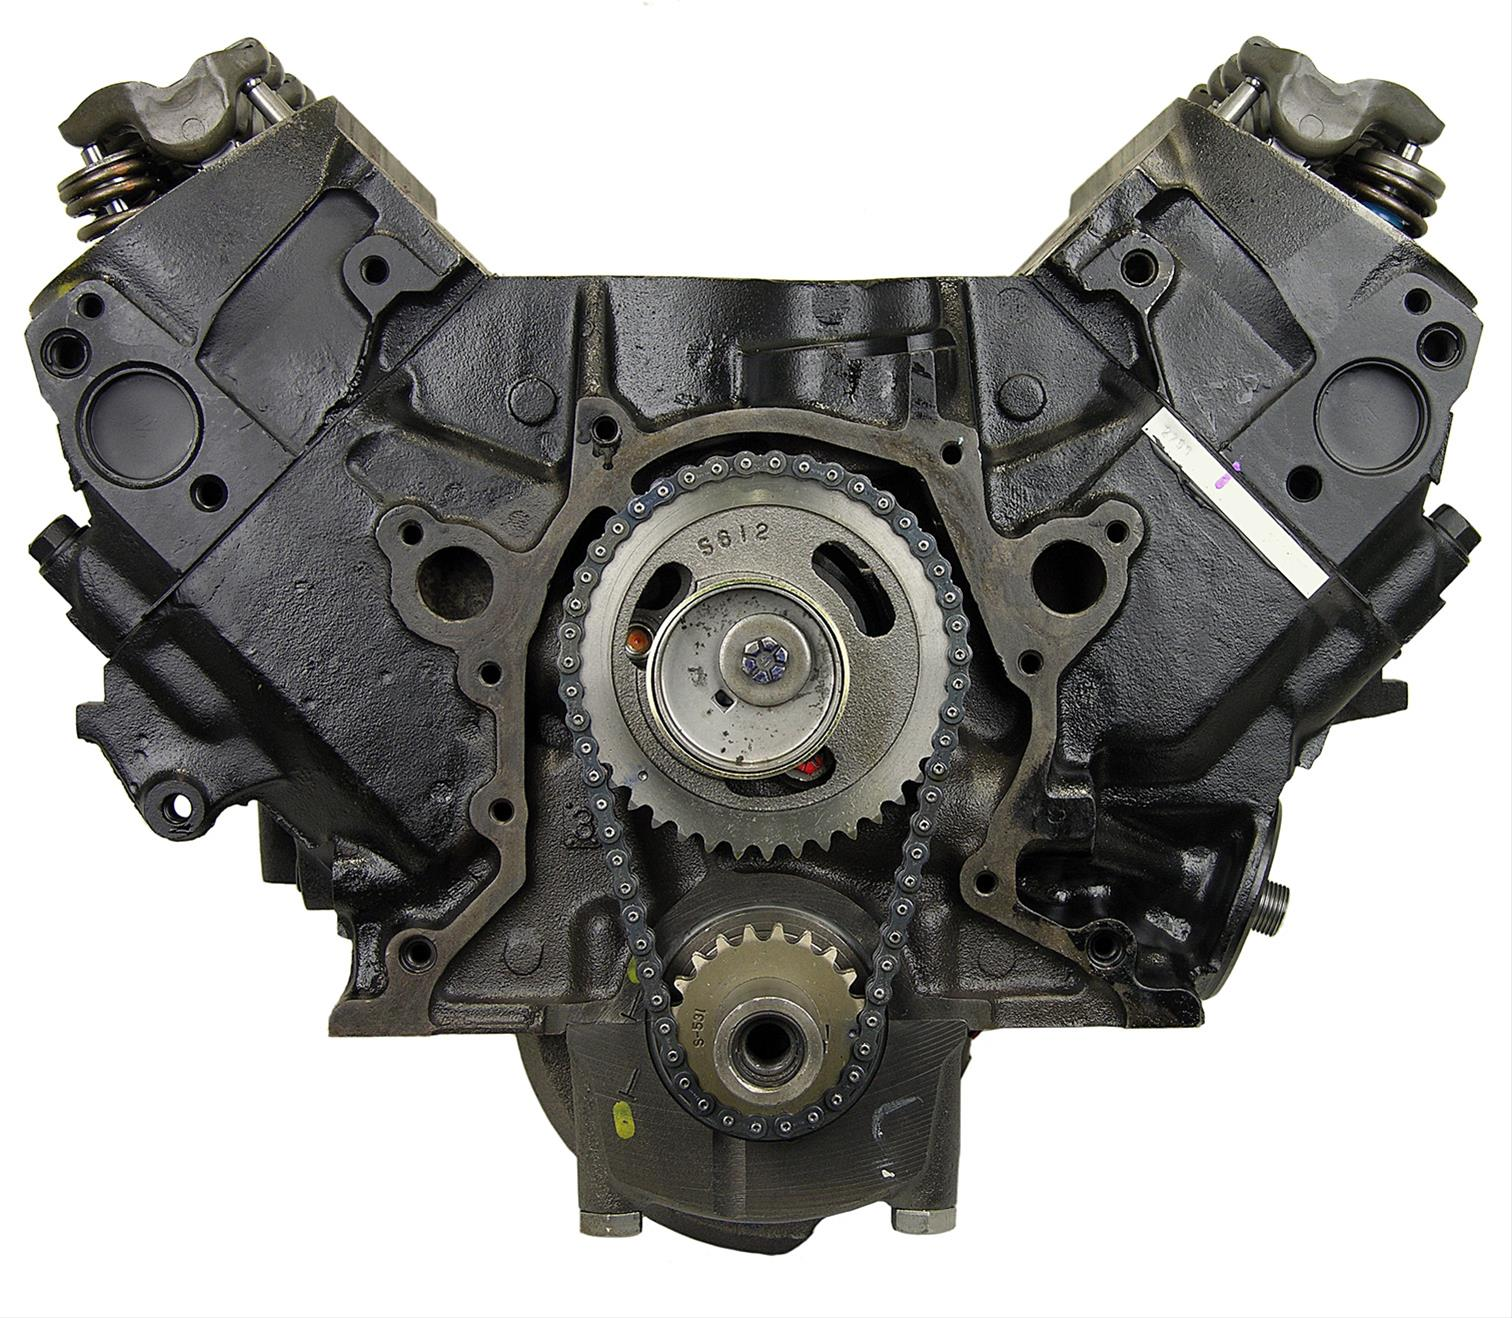 ATK Marine Rebuilt Long Block Engines DM33 - Free Shipping on Orders Over  $49 at Summit Racing